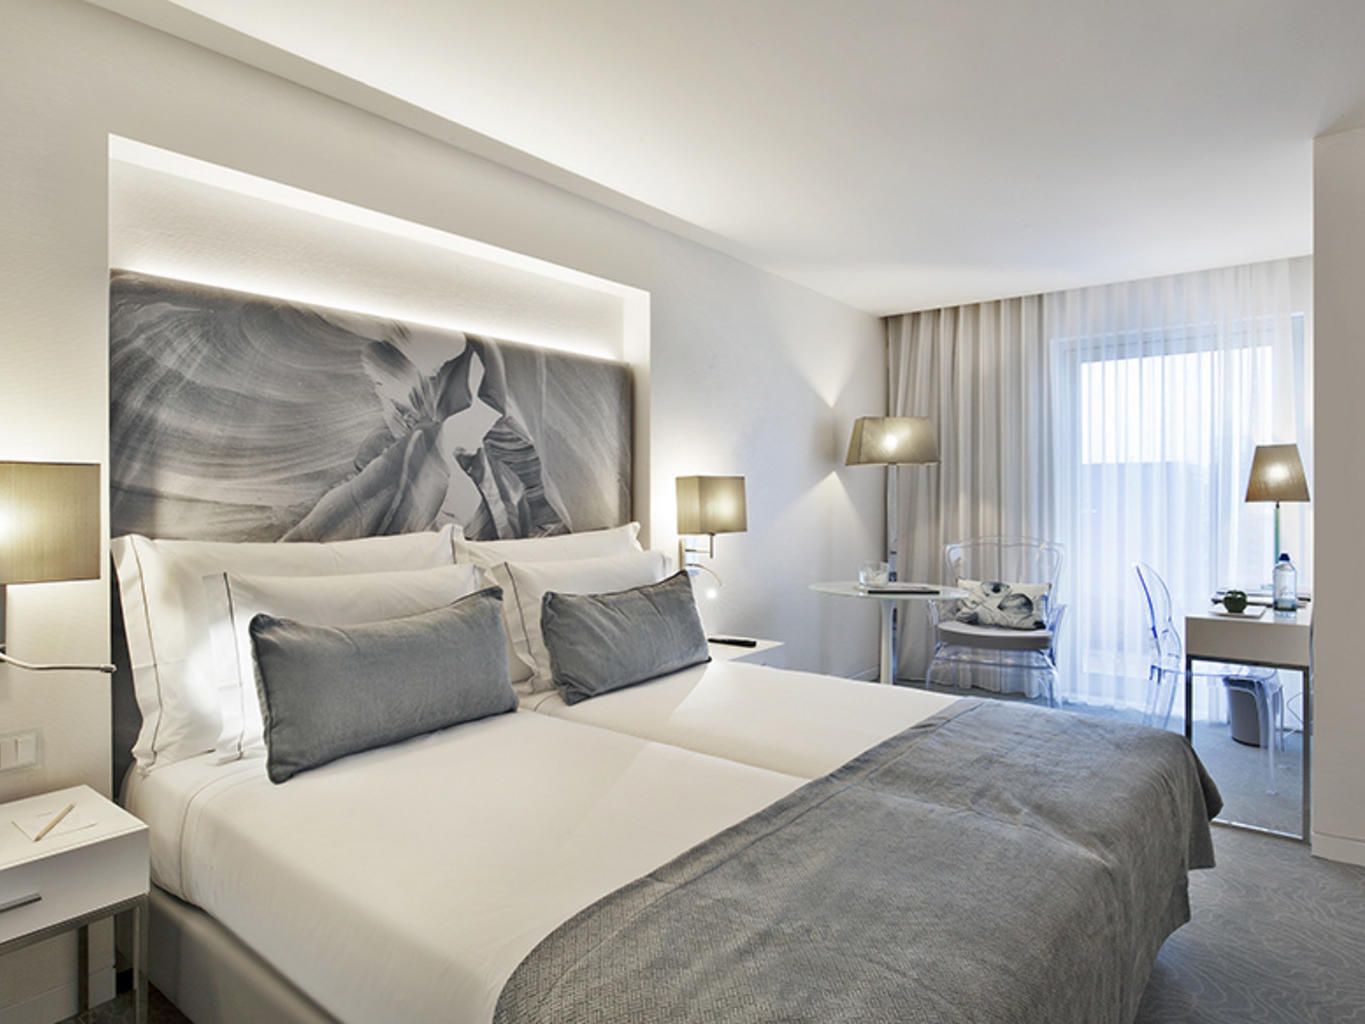 Superior Room en Hotel White Lisboa